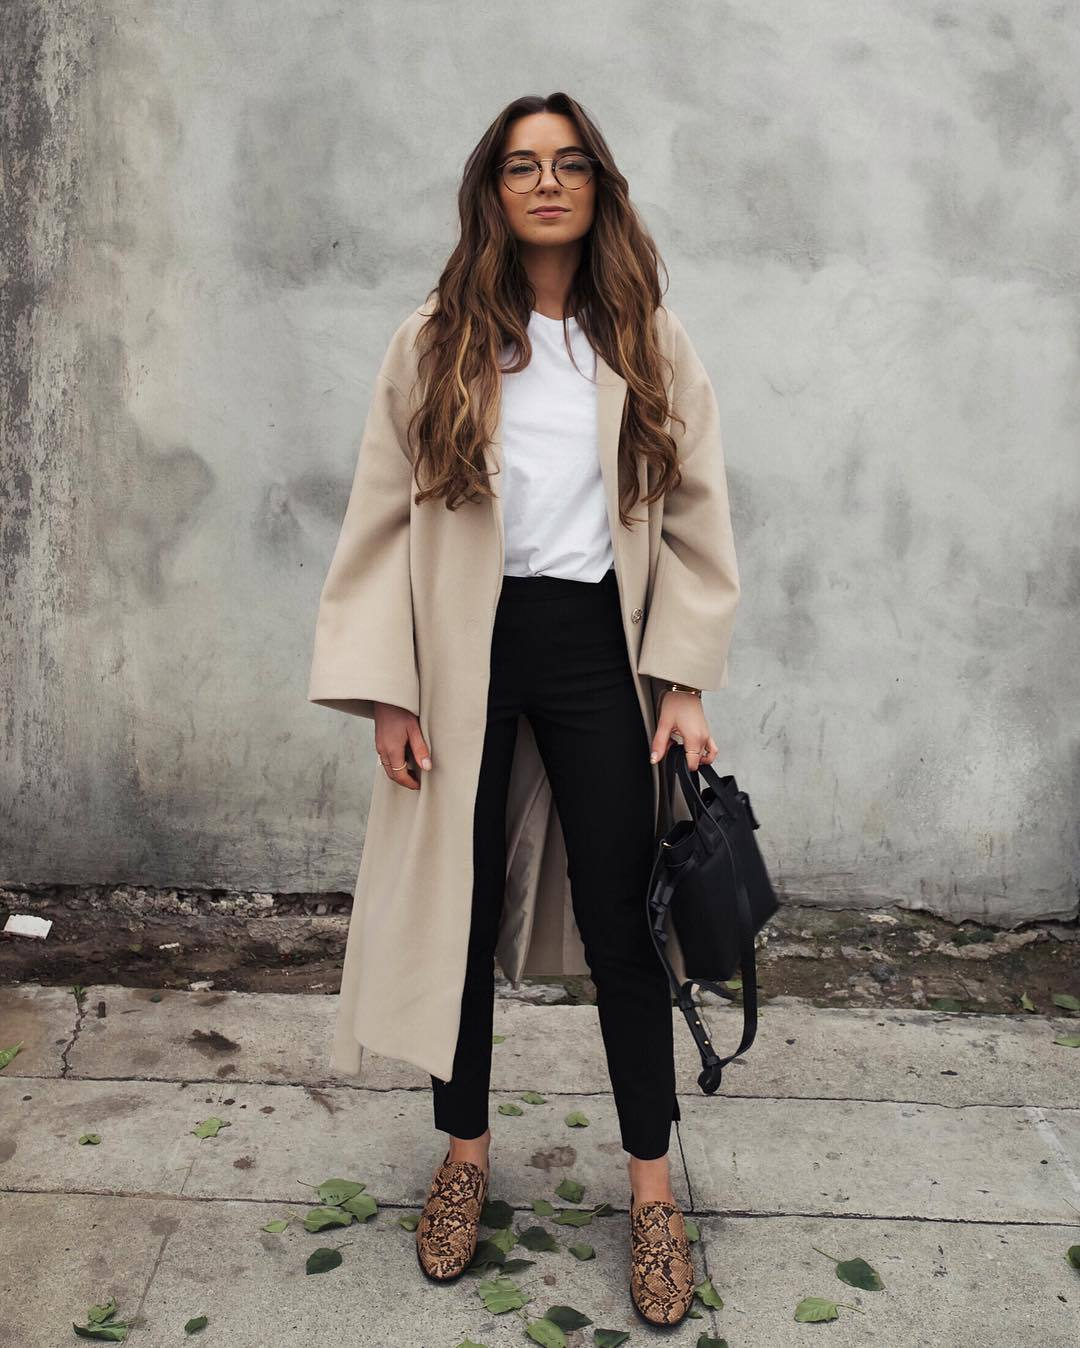 bag black bag snake print flats black skinny pants long coat oversized coat white t-shirt jacket coat beige